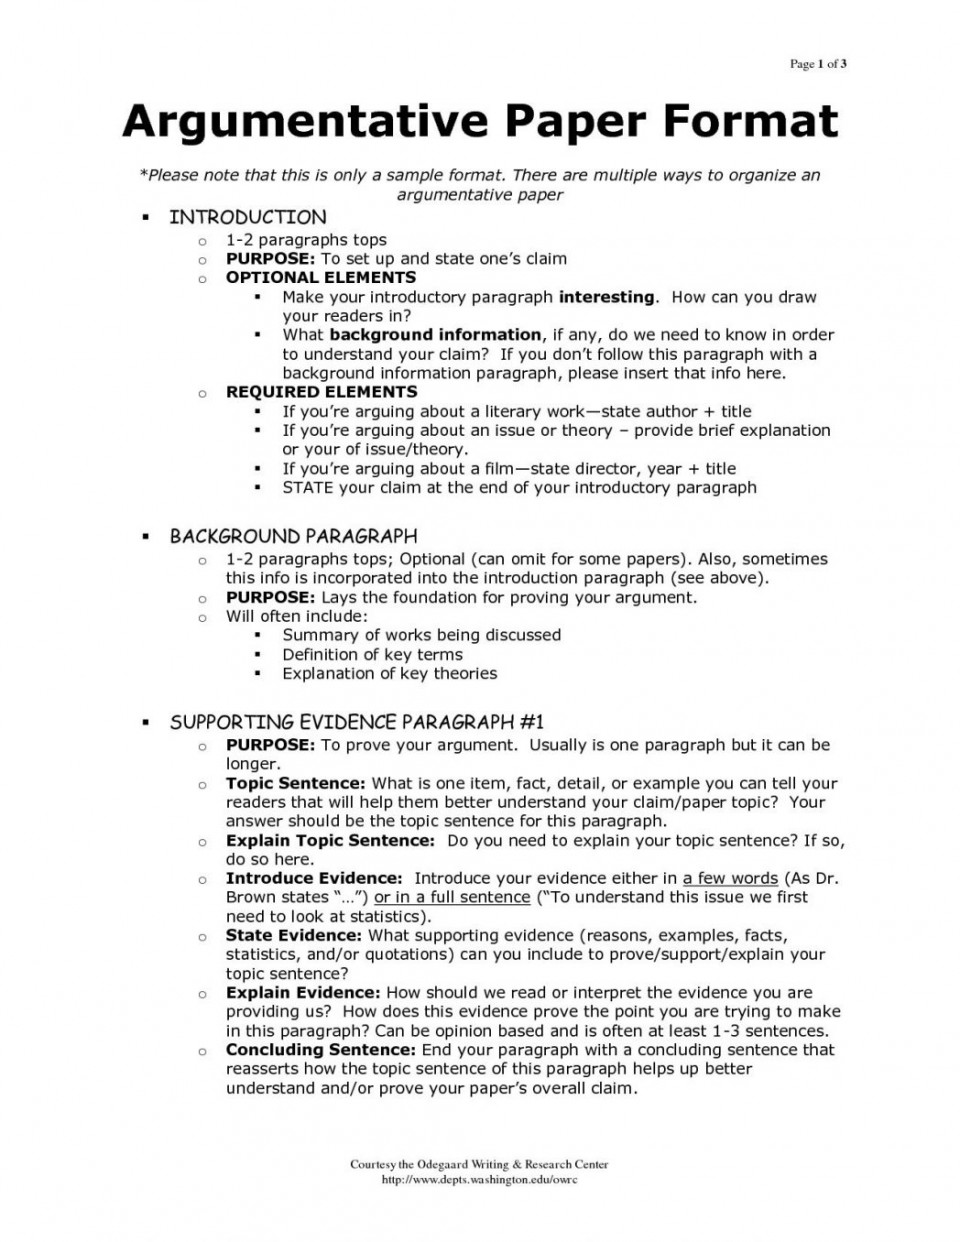 006 Essay Example Argumentativenclusion Outline Writings And Essays Argument Layout Debate Proposal Examples Pertainin Samples How To Write An 1048x1356 Of Beautiful Argumentative Conclusion Introduction Body 960